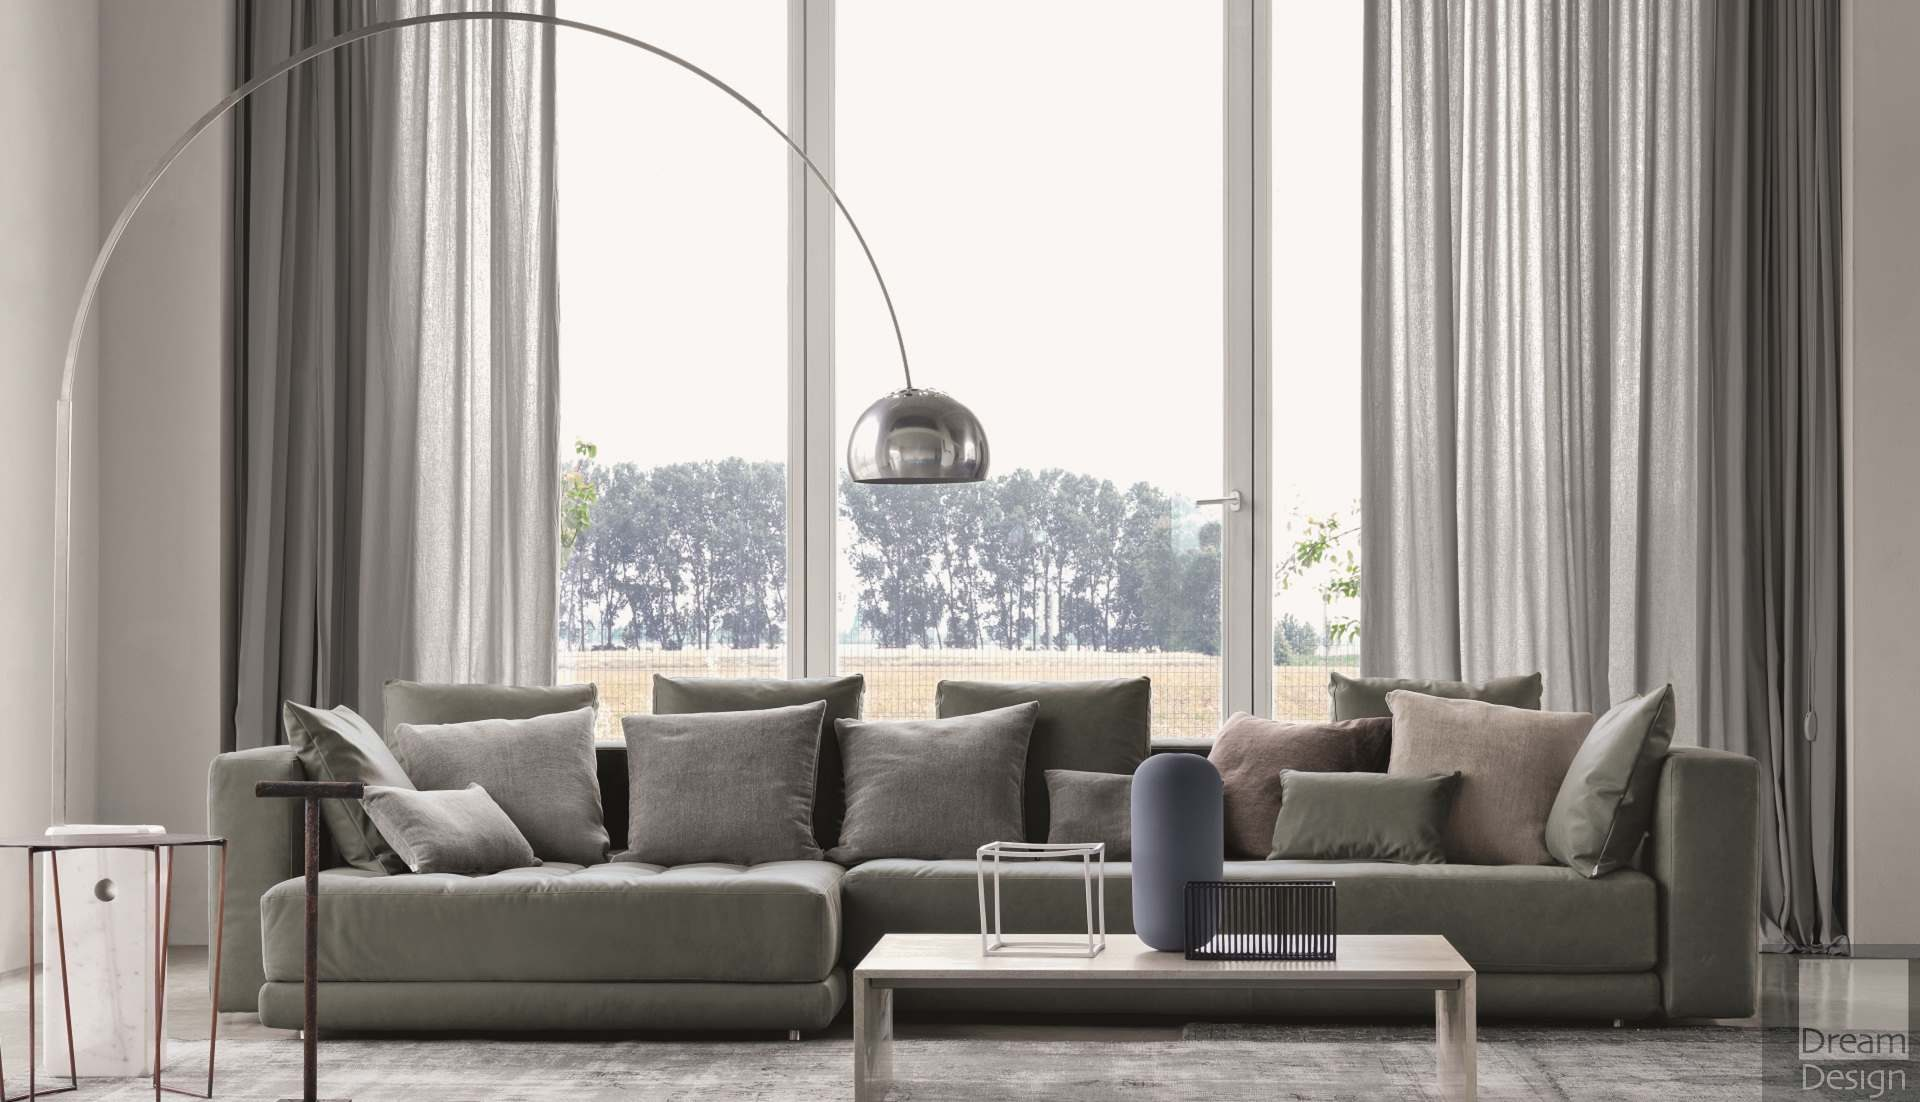 Flos Arco Floor Lamp designed by Achille and Pier Giacomo Castiglioni in 1962